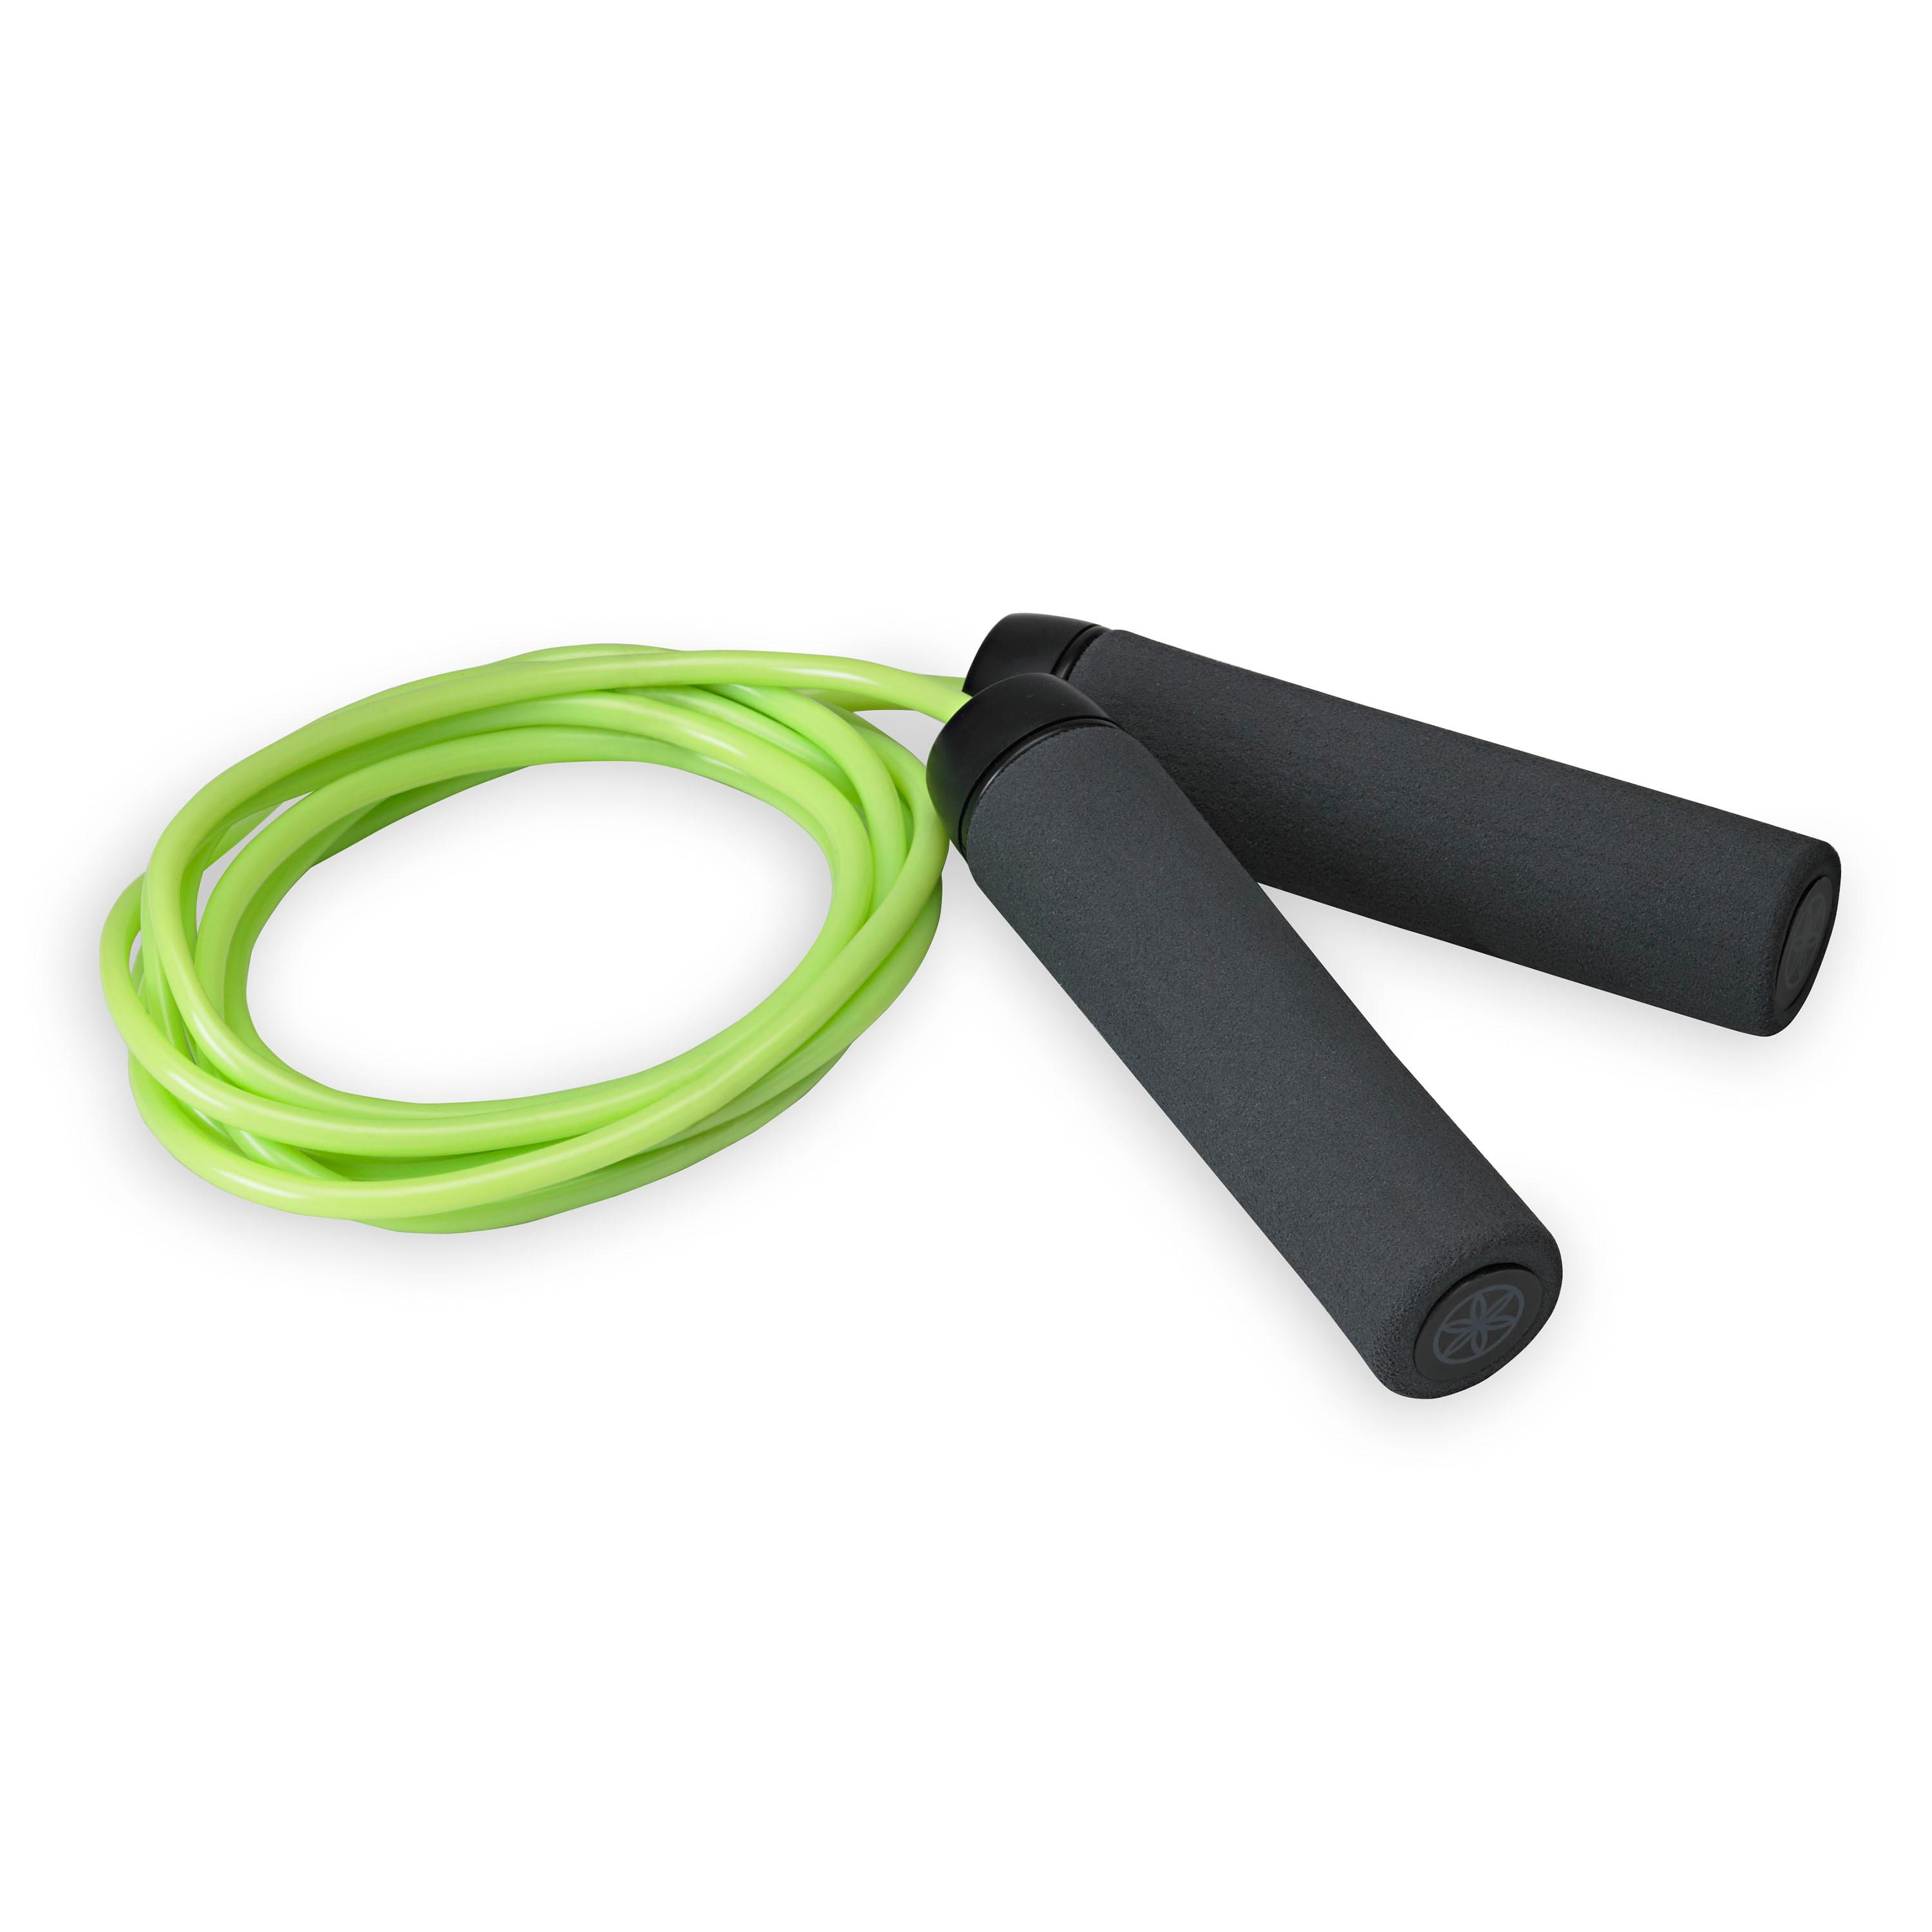 Gaiam Speed Rope // Price: $9.98 // (Image: Gaiam)<p></p>